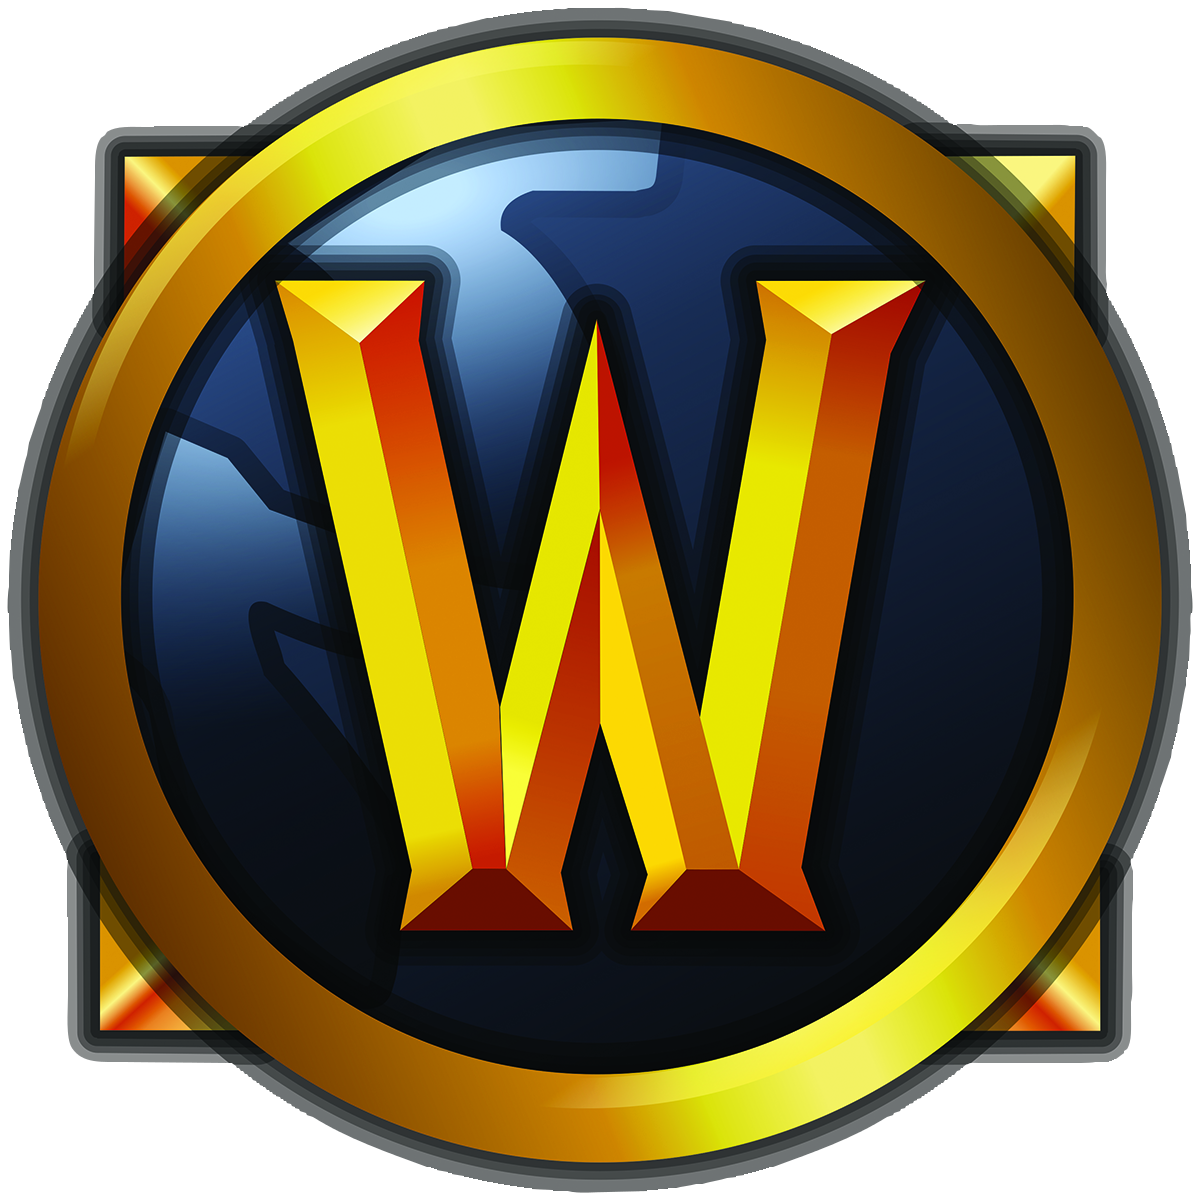 The World of Warcraft logo: a W inside a circle in front of a square